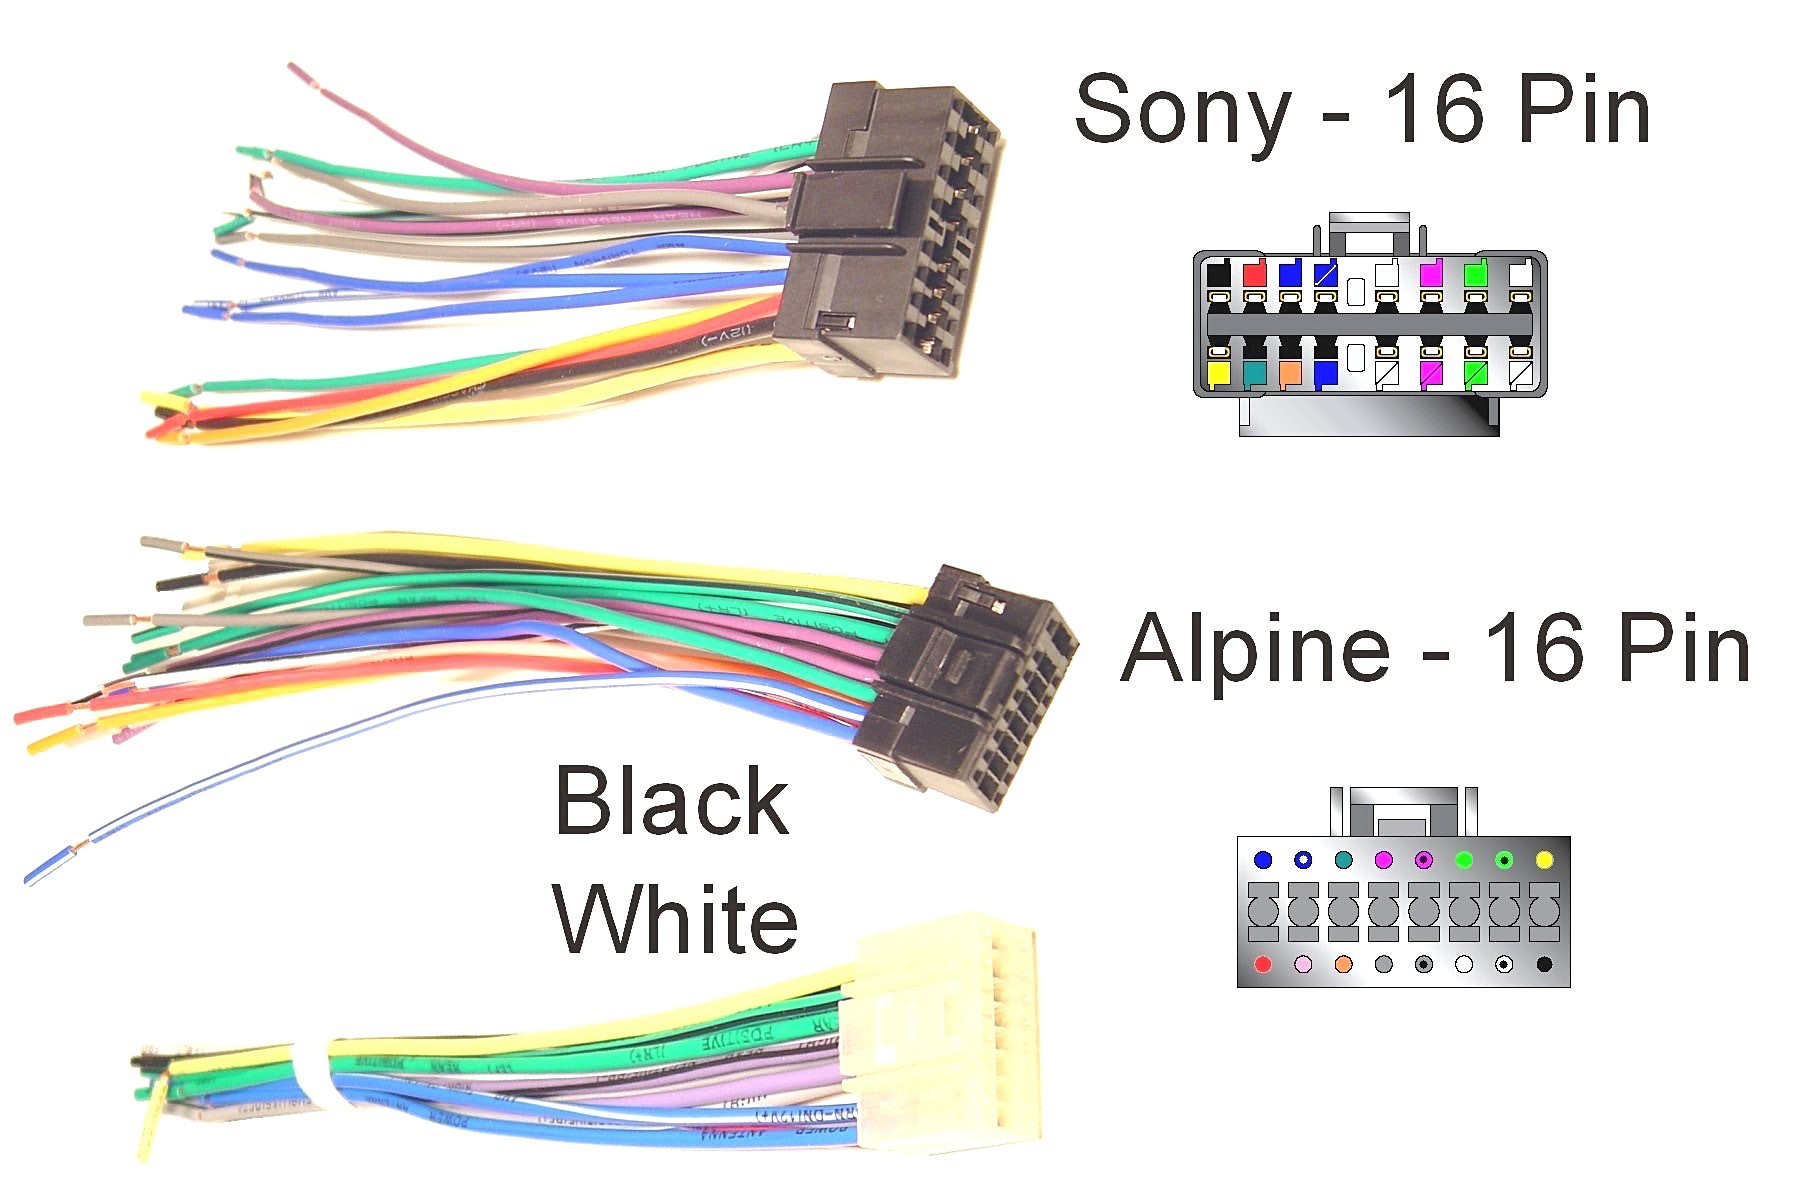 Sony Xplod Car Stereo Wiring Diagram from 2020cadillac.com